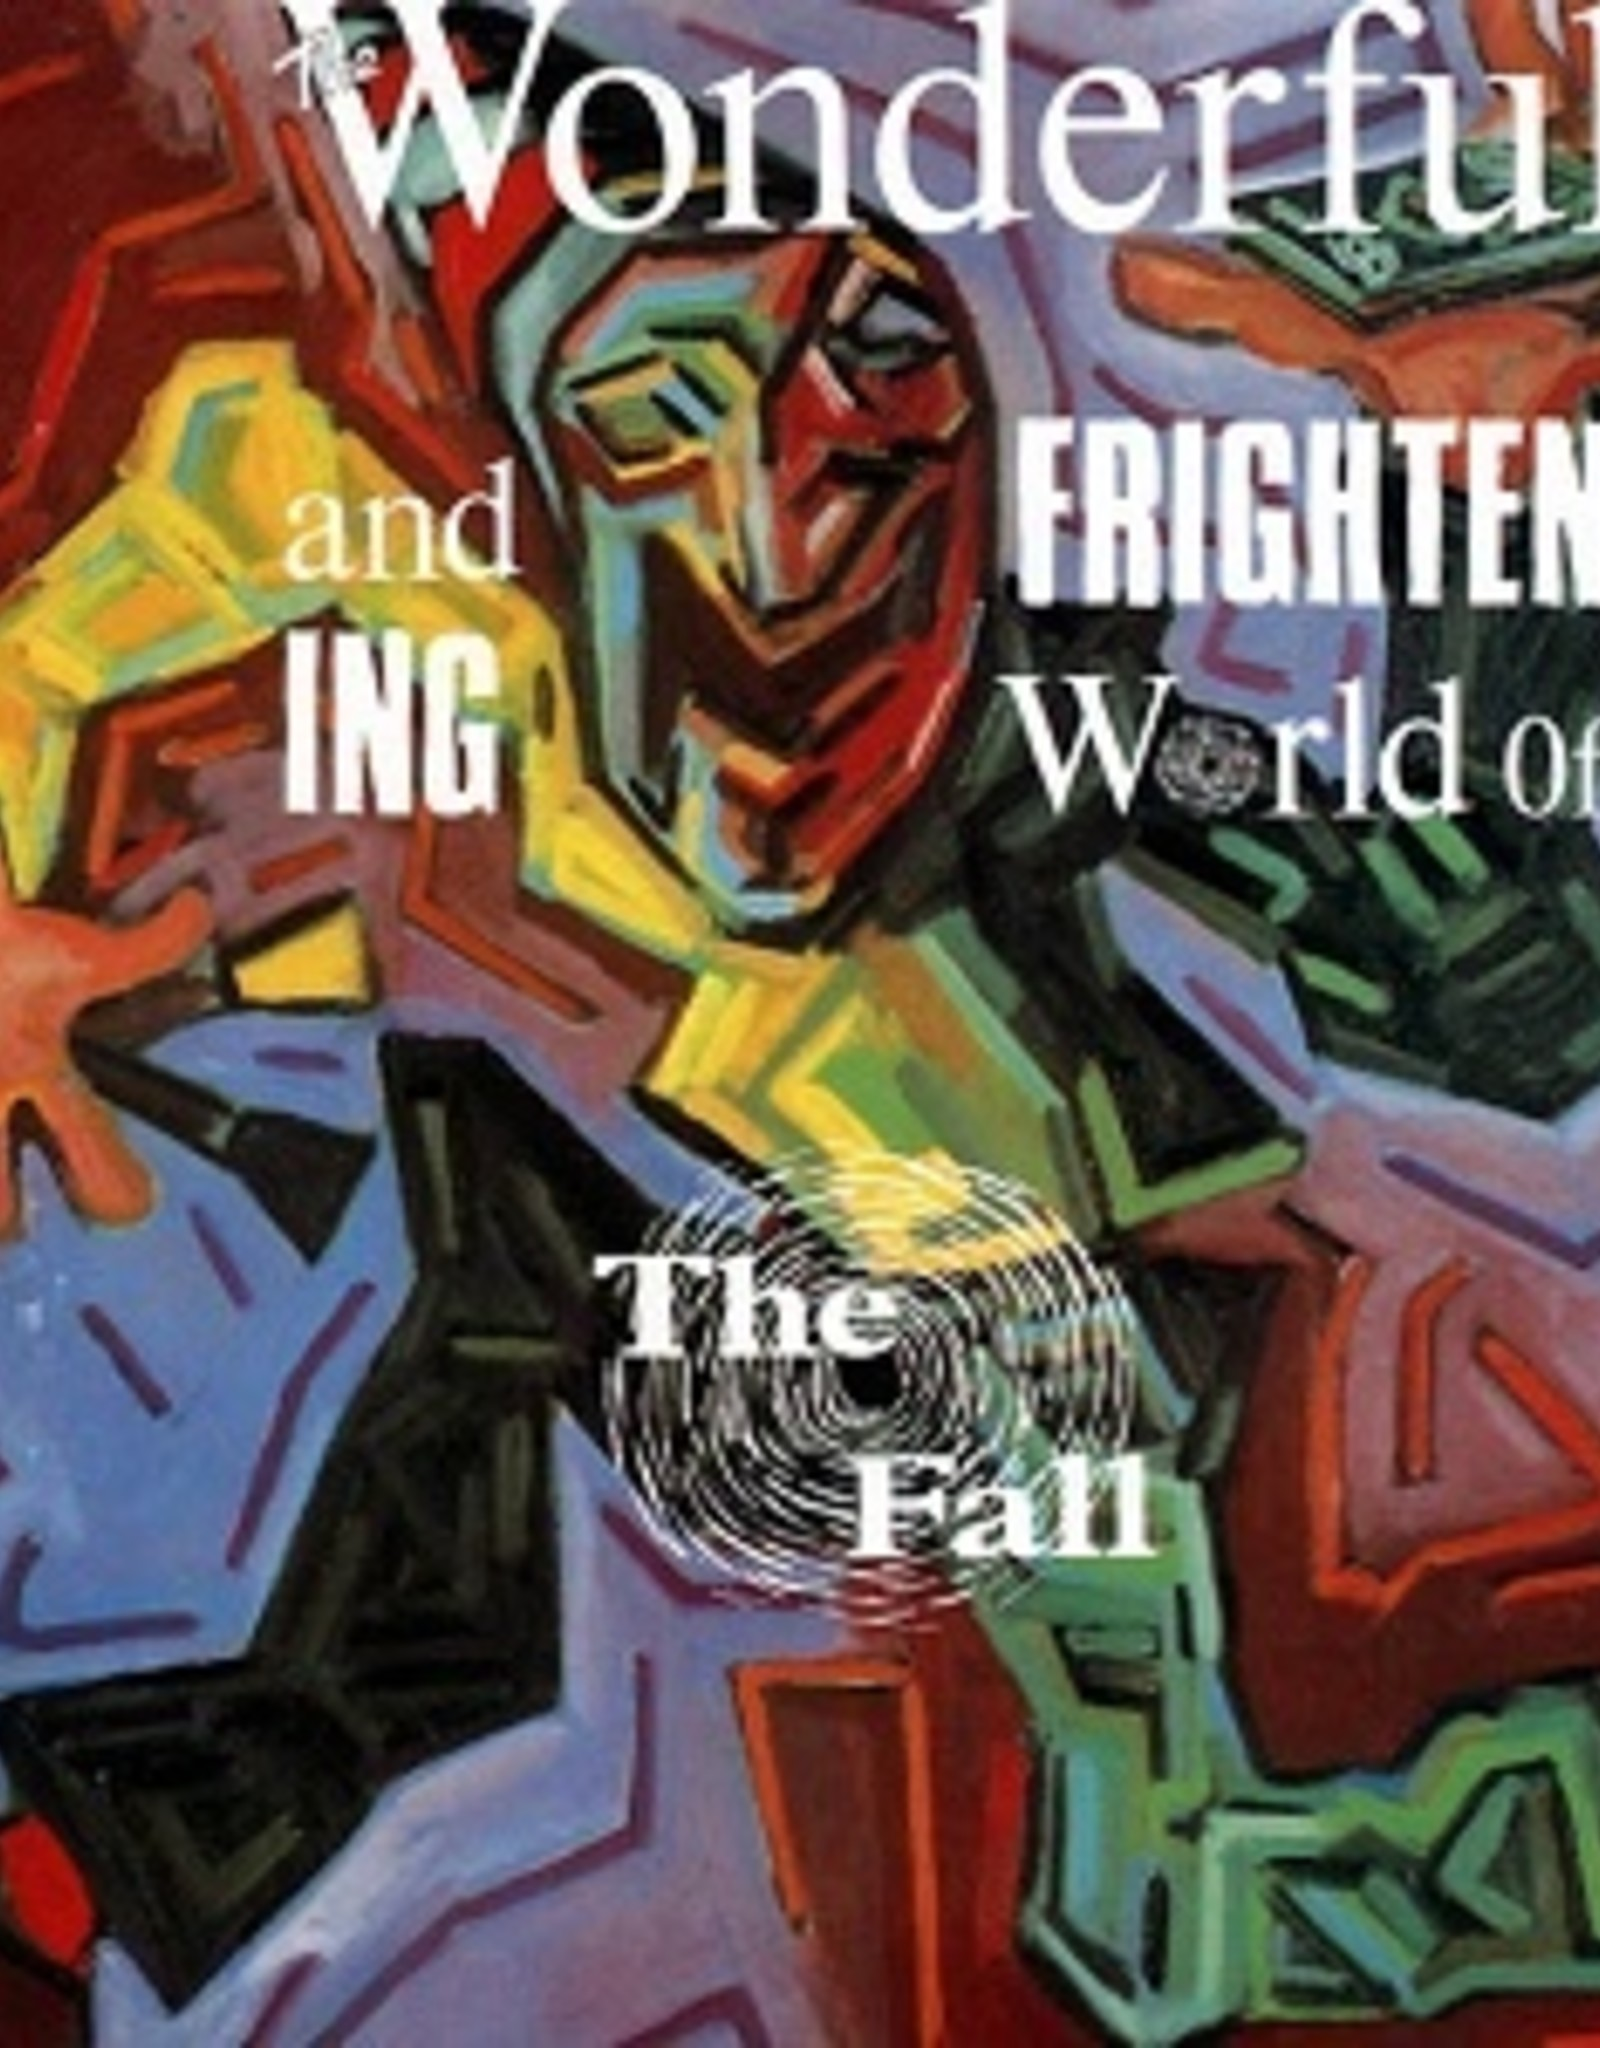 The Fall - The Wonderful and Frightening World of The Fall